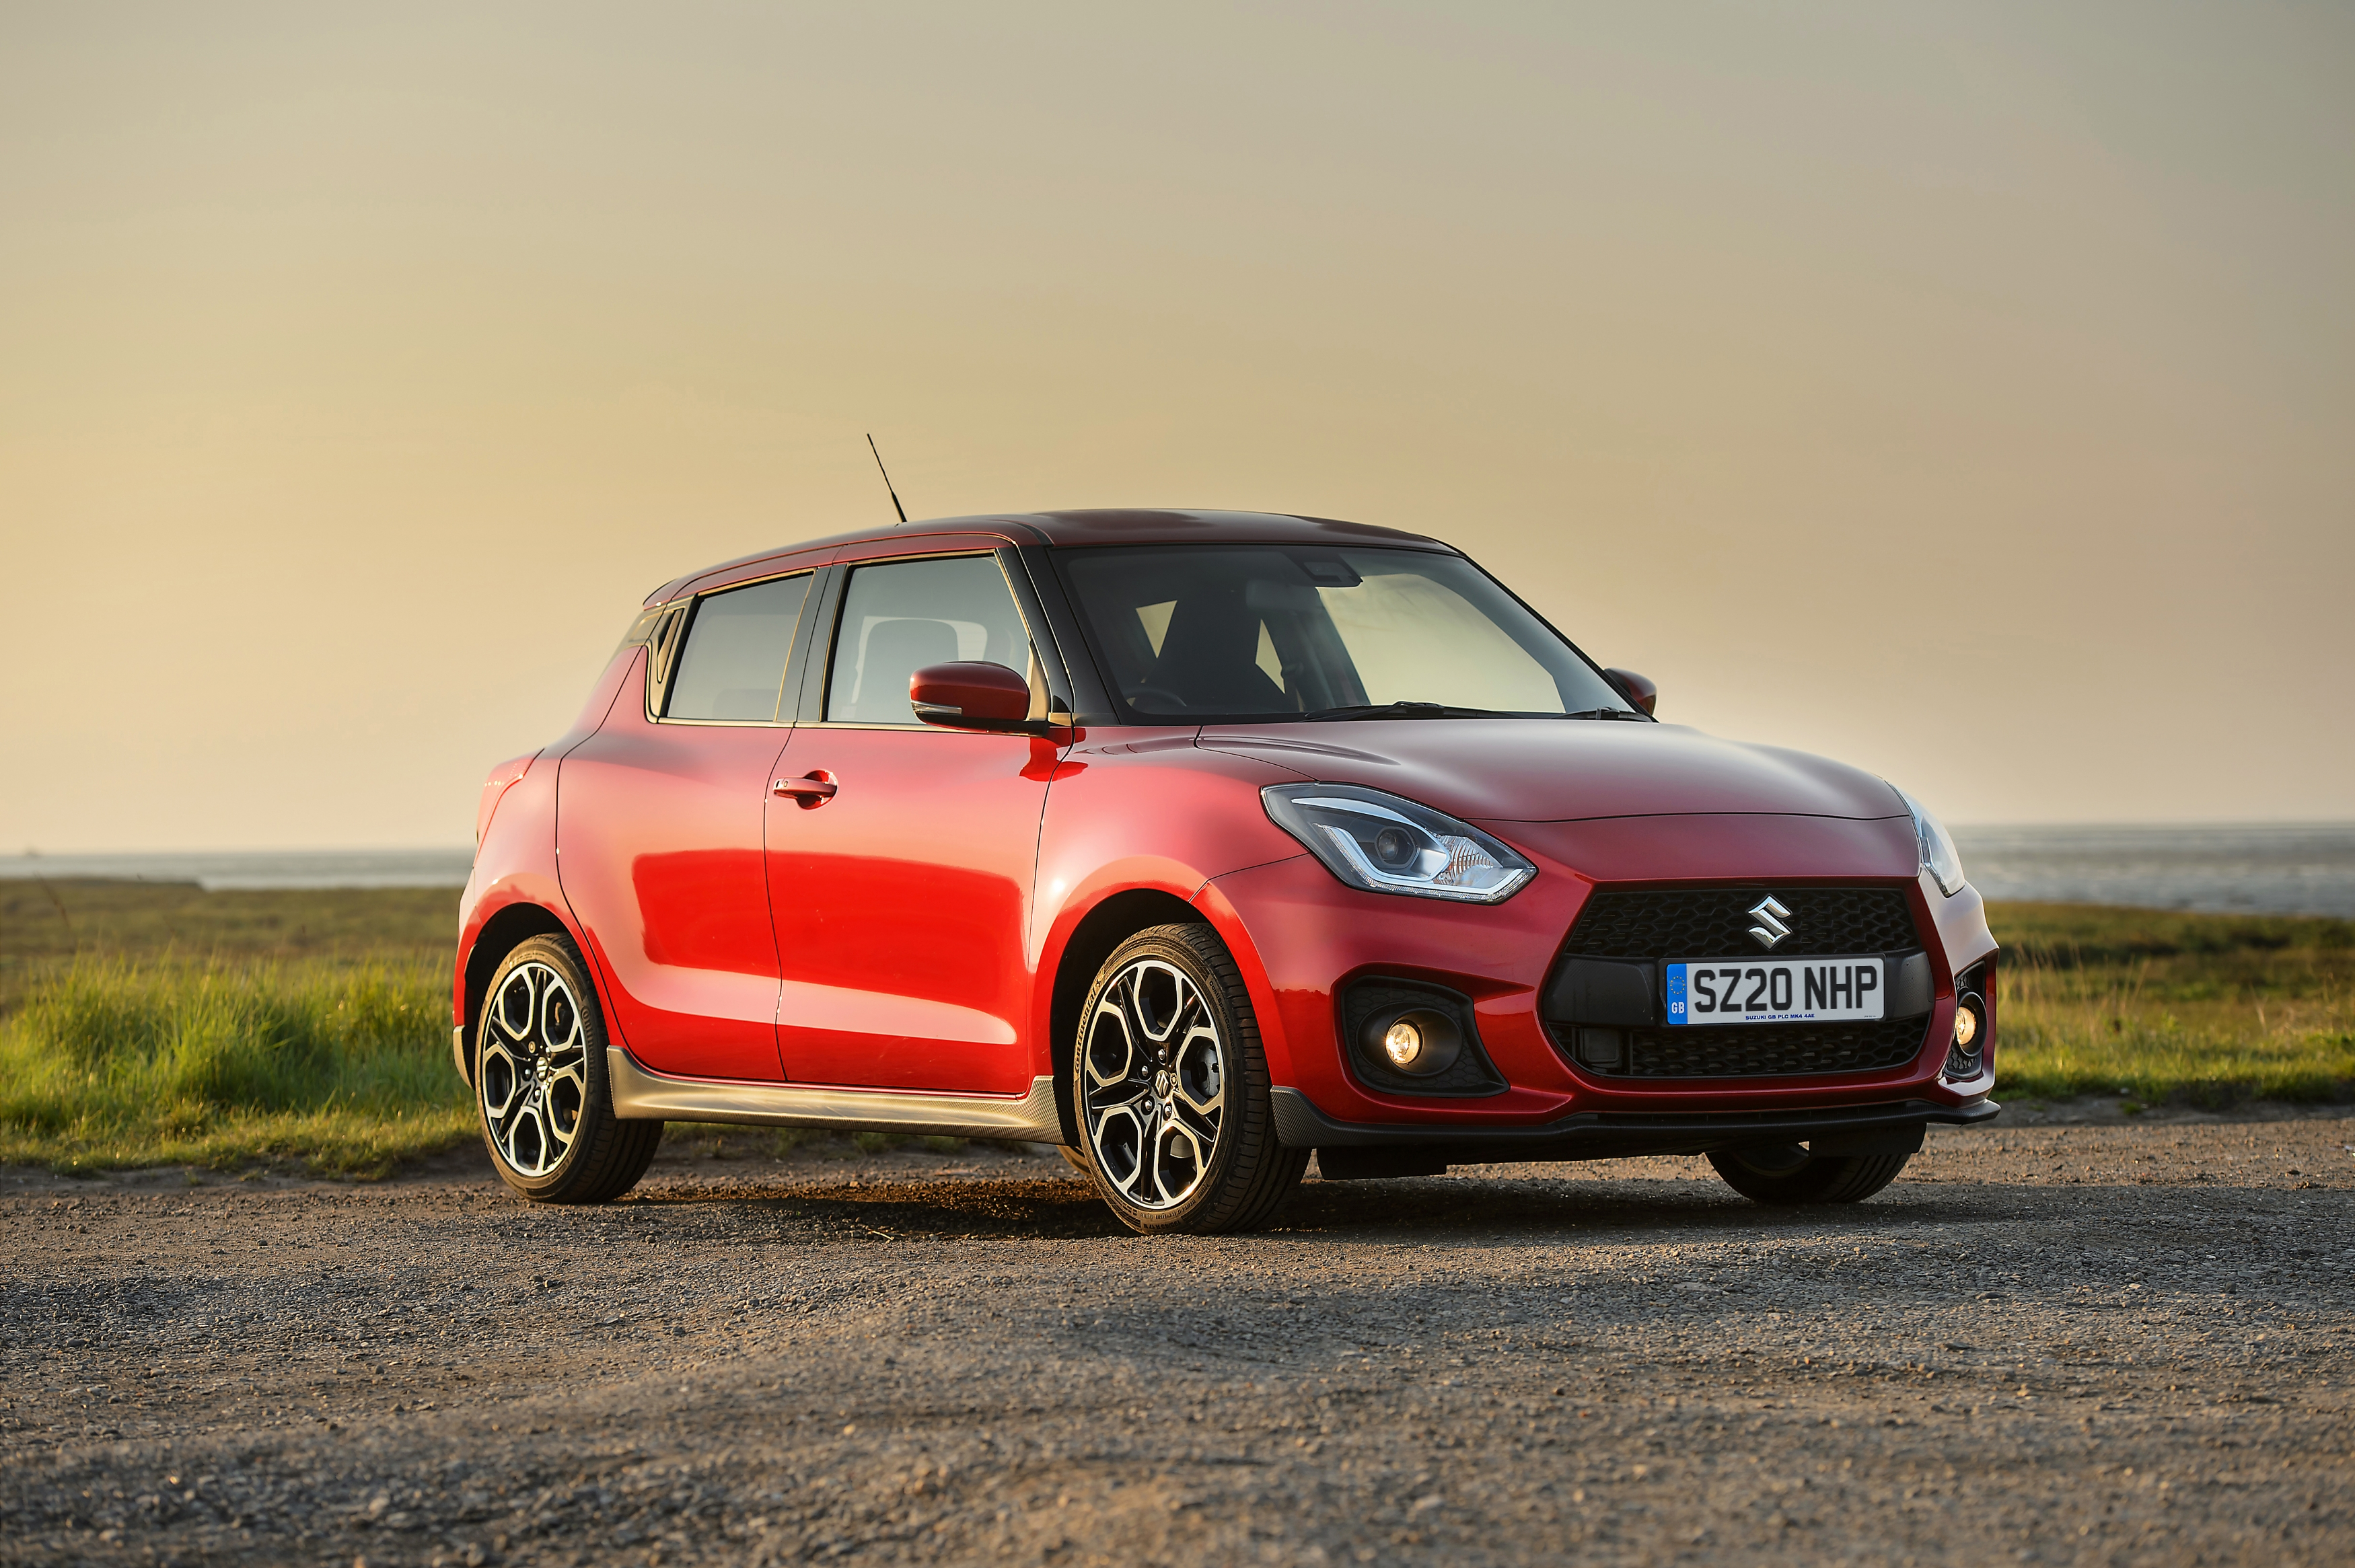 Suzuki has always been all about value and reliability - and that's still evident in the new Swift Sport Hybrid